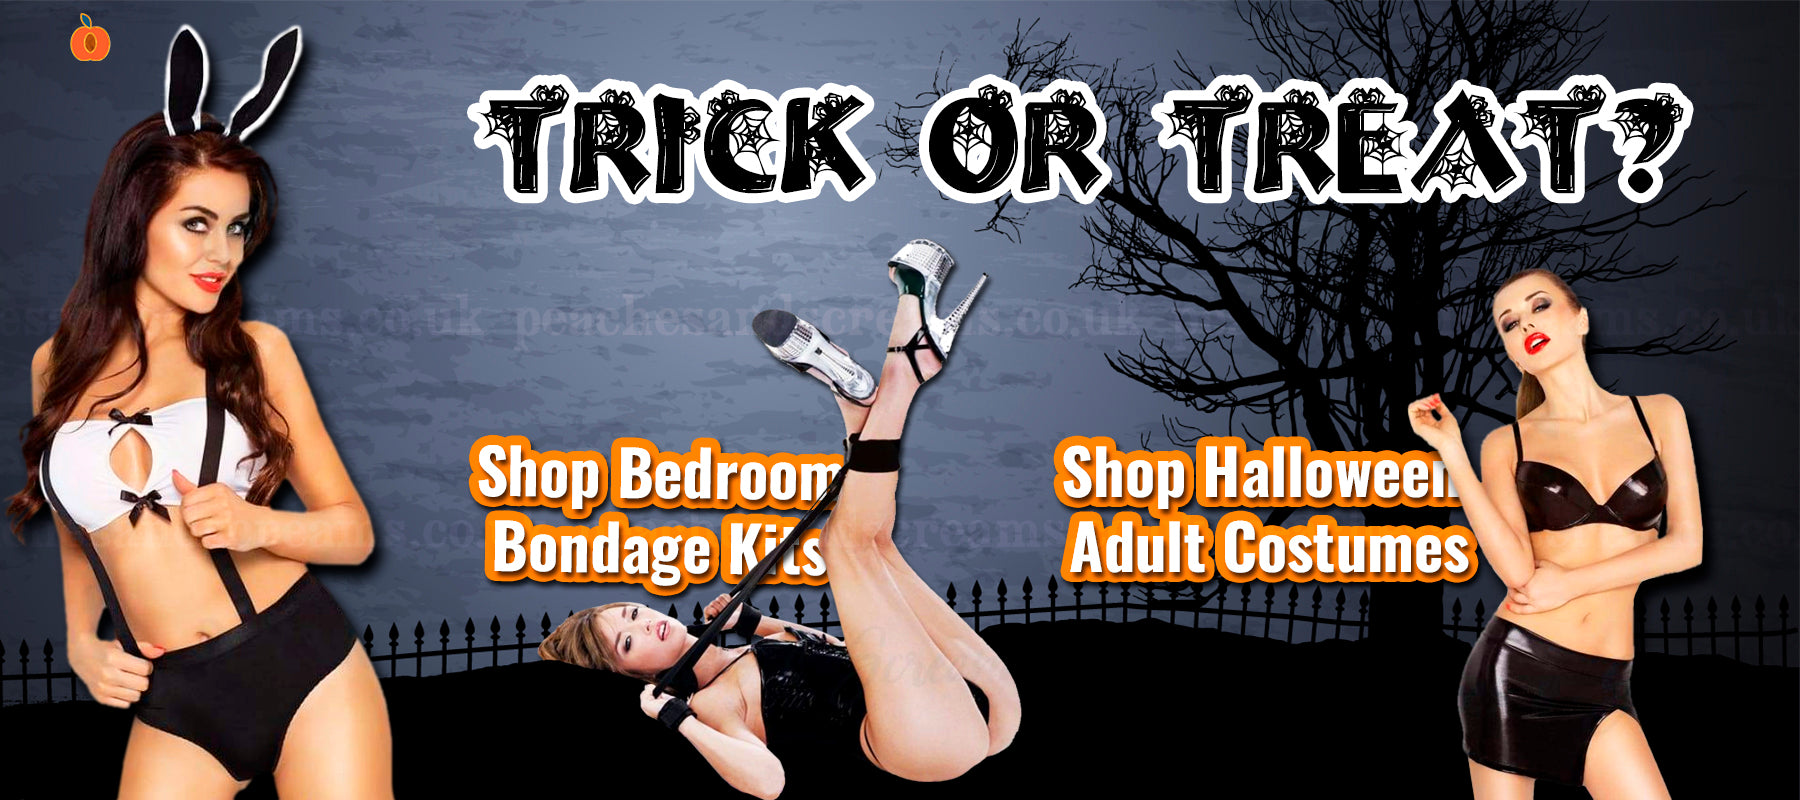 Peaches and Screams UK Sex Shop Halloween Sale